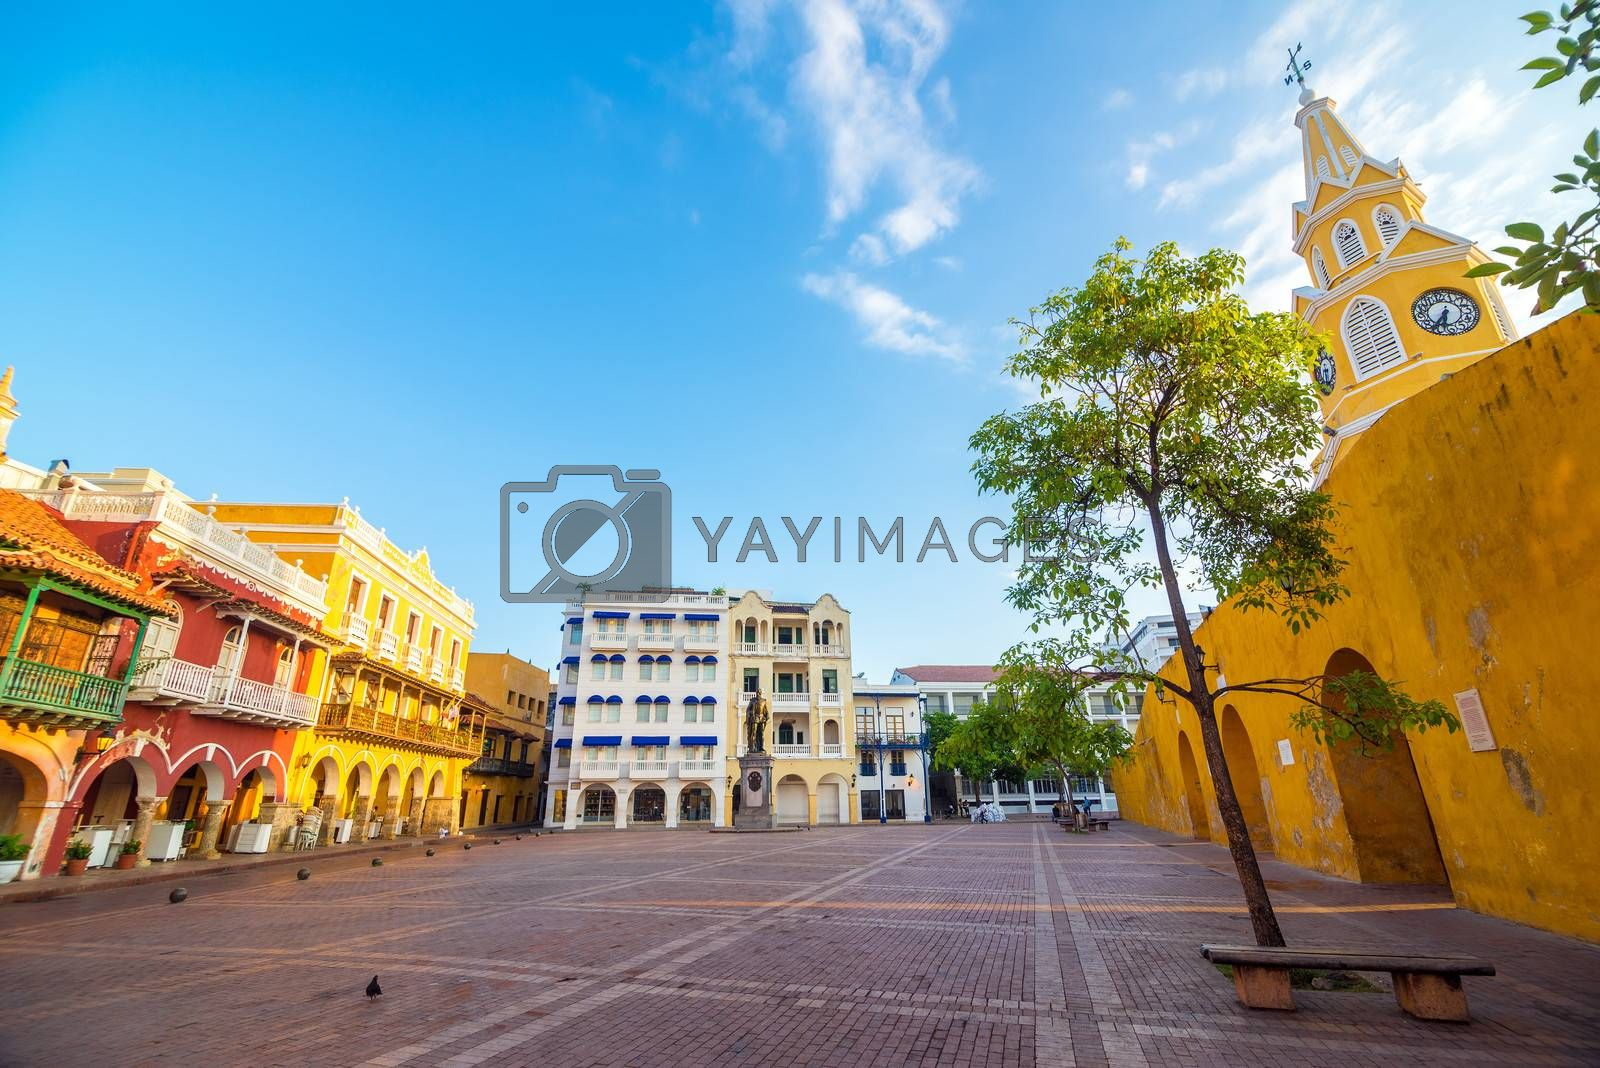 Plaza next to the clock tower gate in the heart of the old town of Cartagena, Colombia